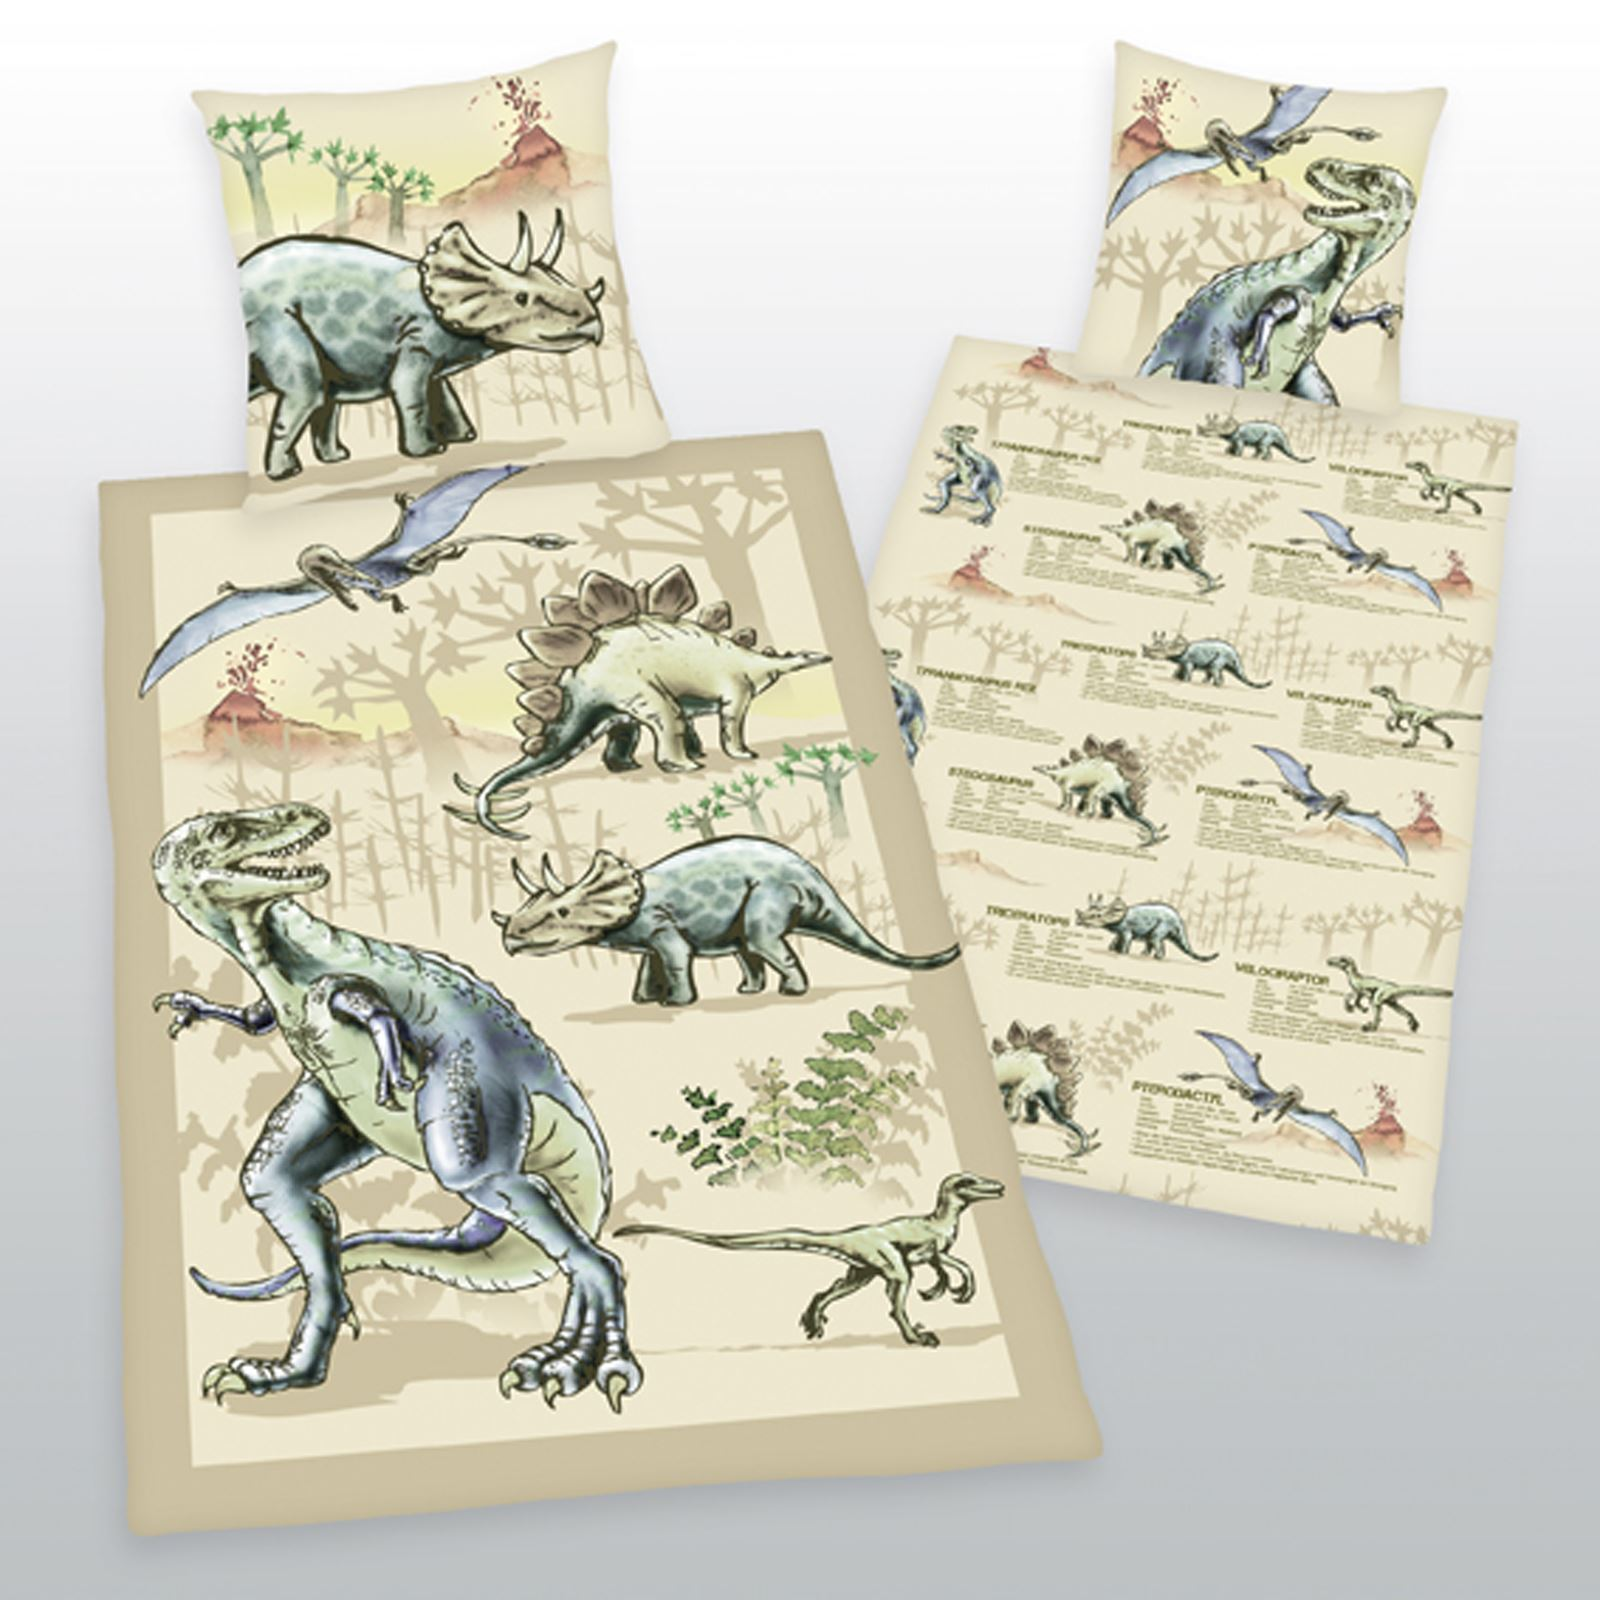 singles in dinosaur Buy dinosaur uk single/us twin duvet cover and pillowcase set: duvet cover sets - amazoncom free delivery possible on eligible purchases.